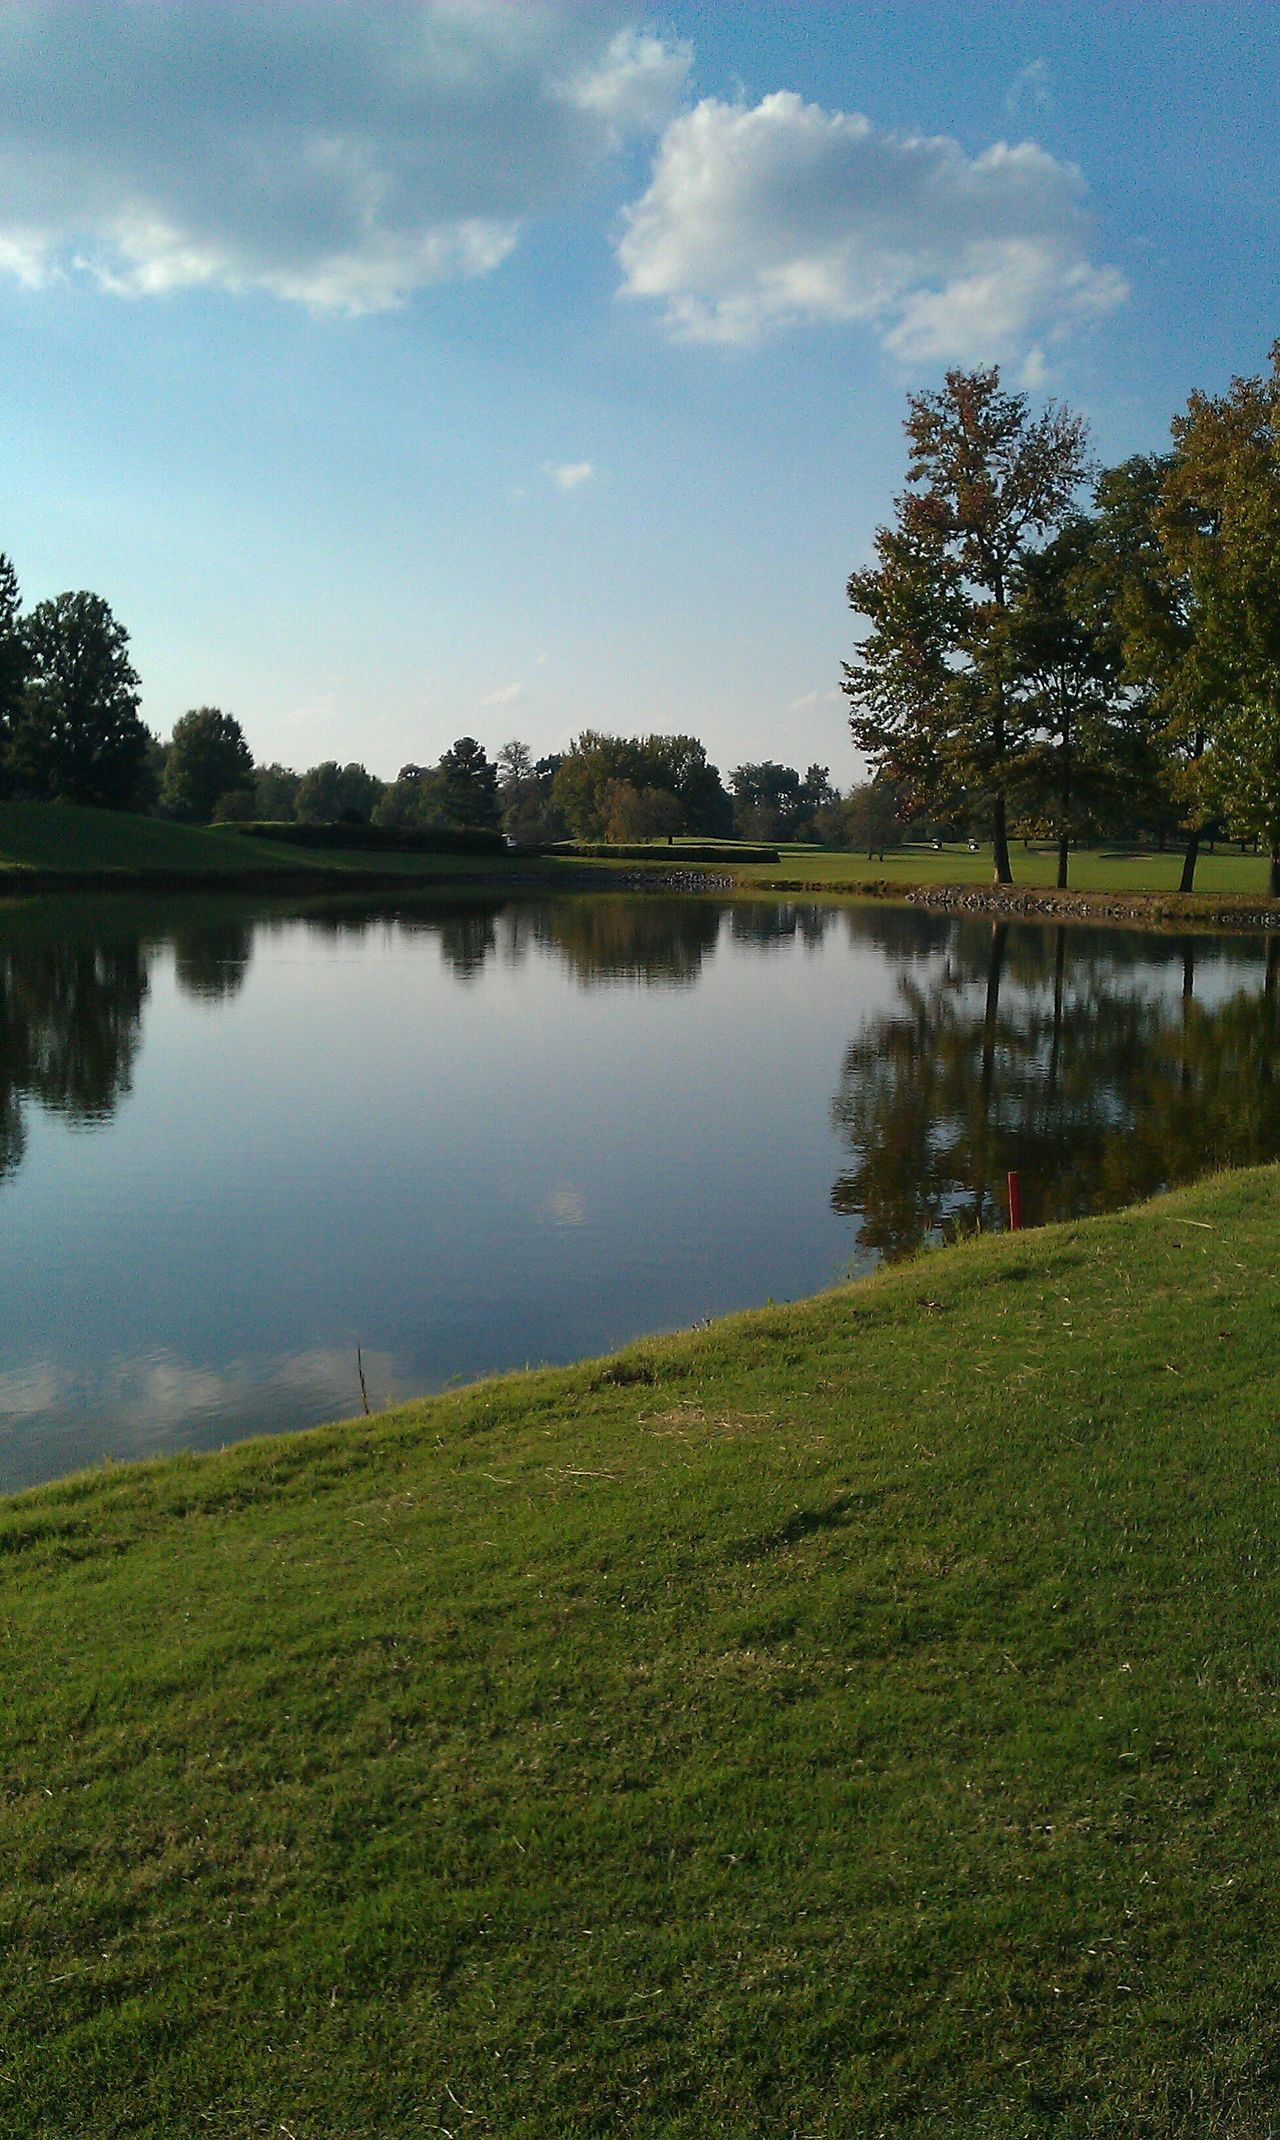 Golfing The Grass Is Green Golf Course Reflection Beautiful Day EyeEm Best Shots EyeEm Best Shots - Nature Landscape_photography Green